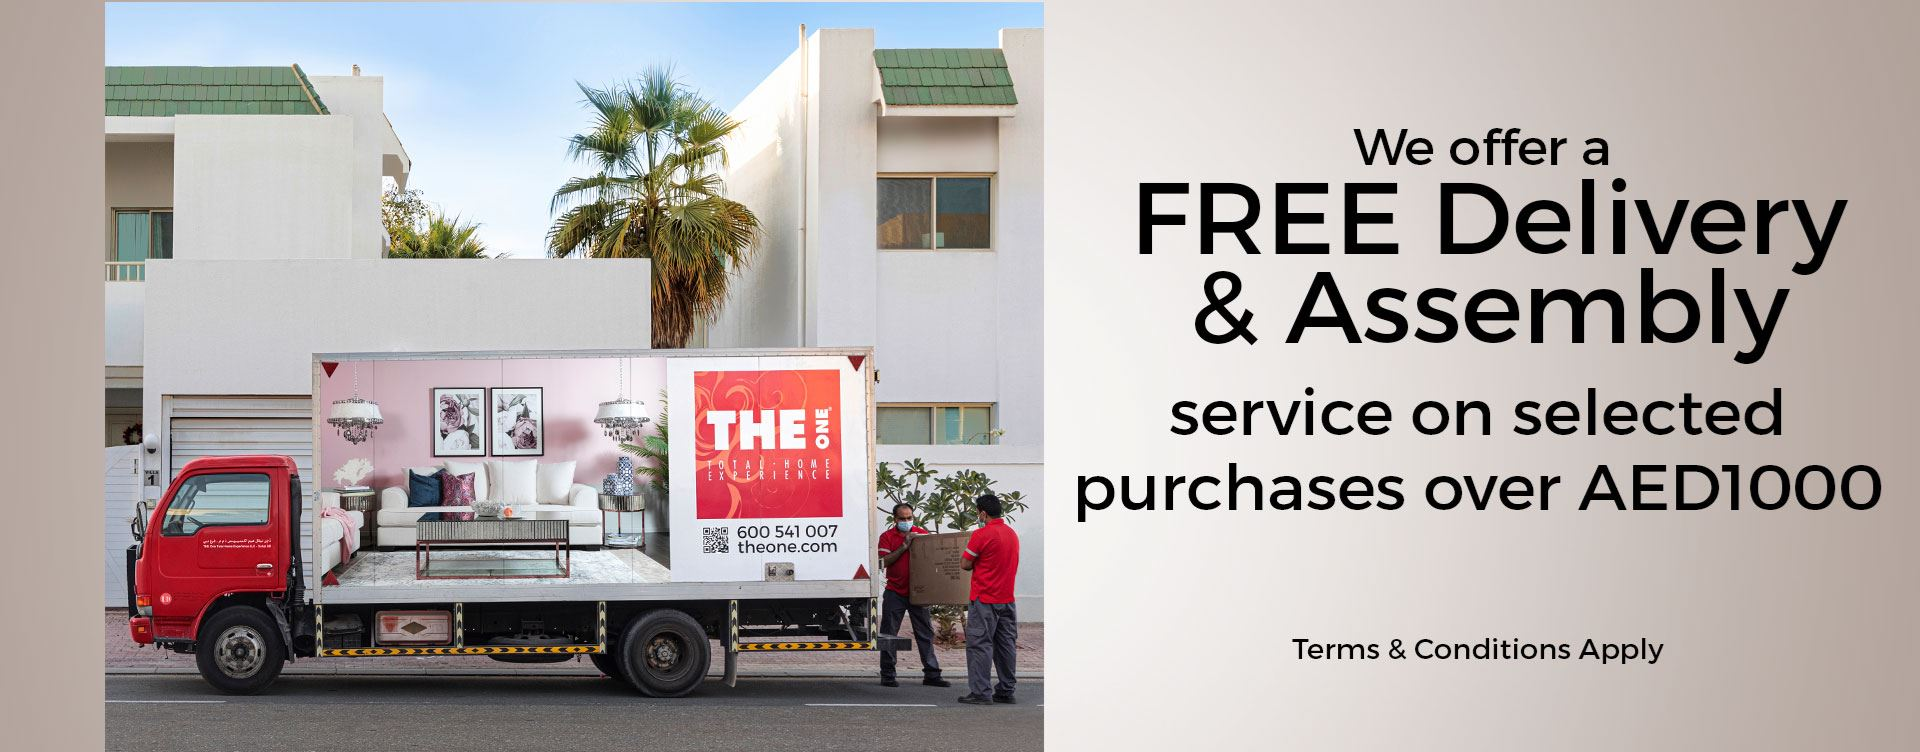 THE One Delivery & Assembly - UAE